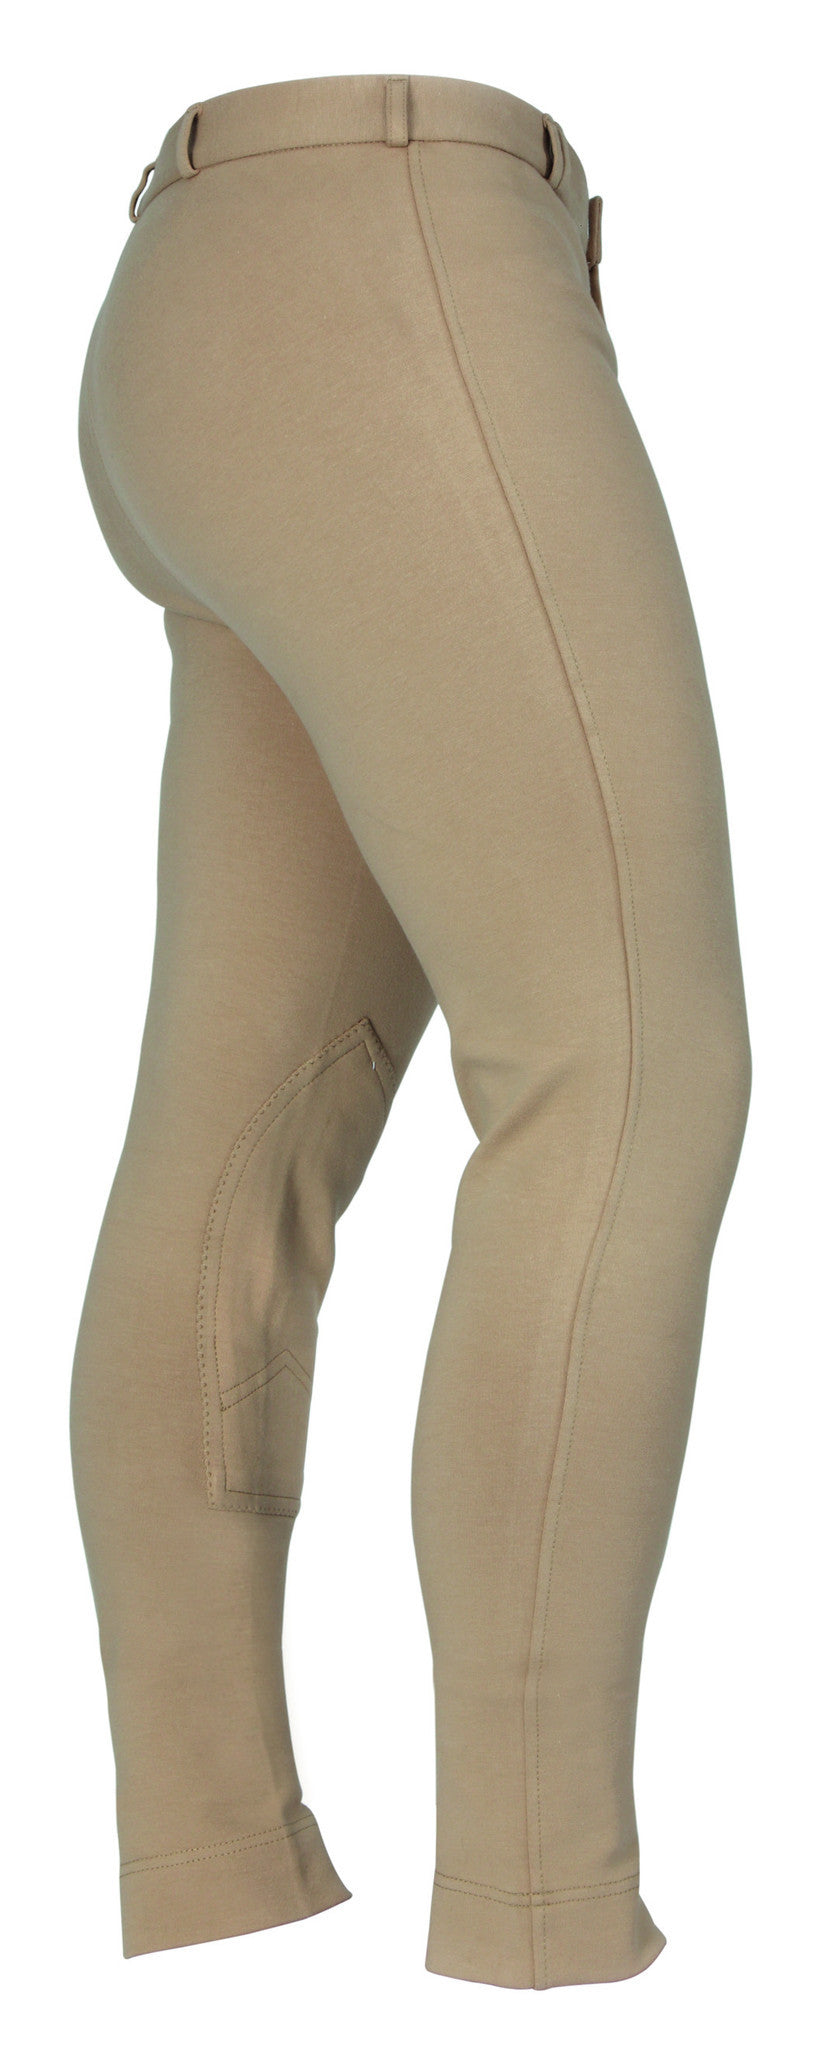 Shires SaddleHugger Jodhpurs - Gents